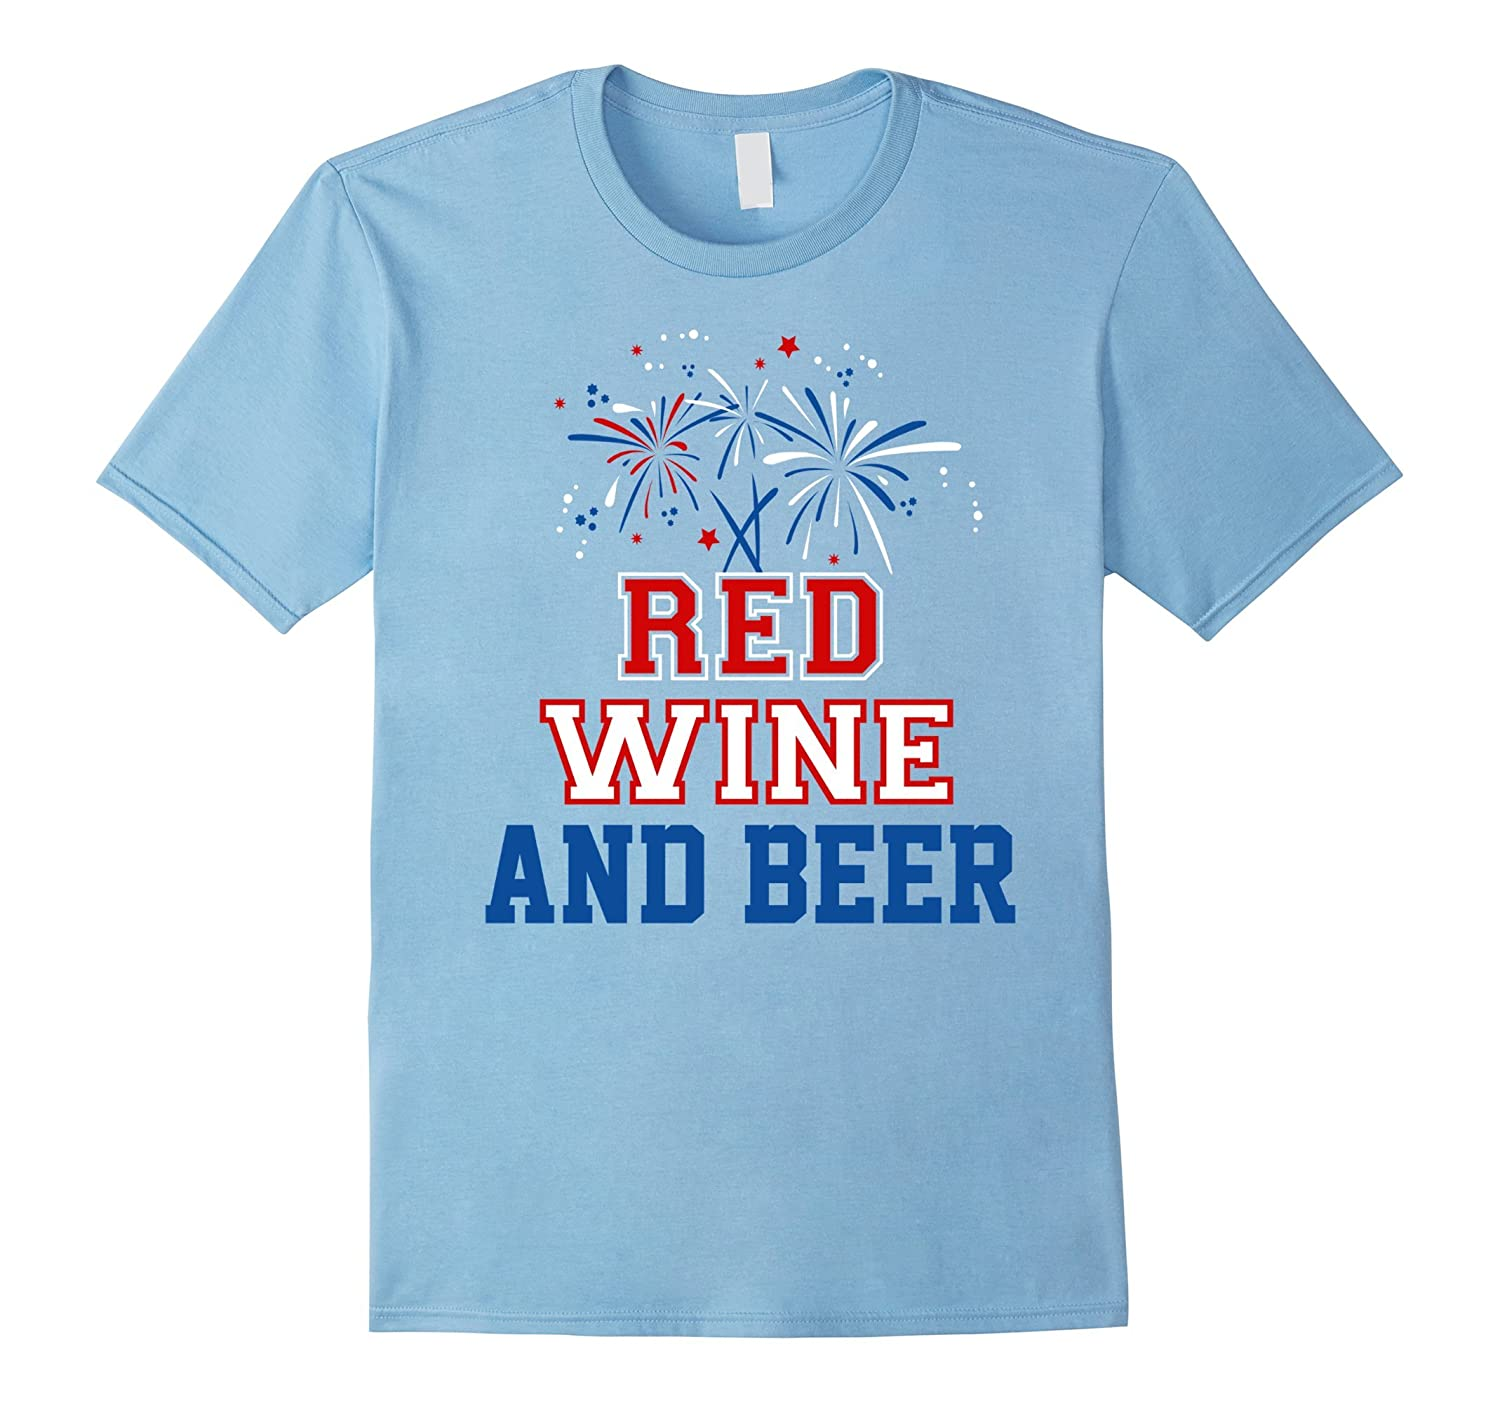 Funny patriotic t shirt gift 4th of july red wine and beer for Remove red wine from white shirt